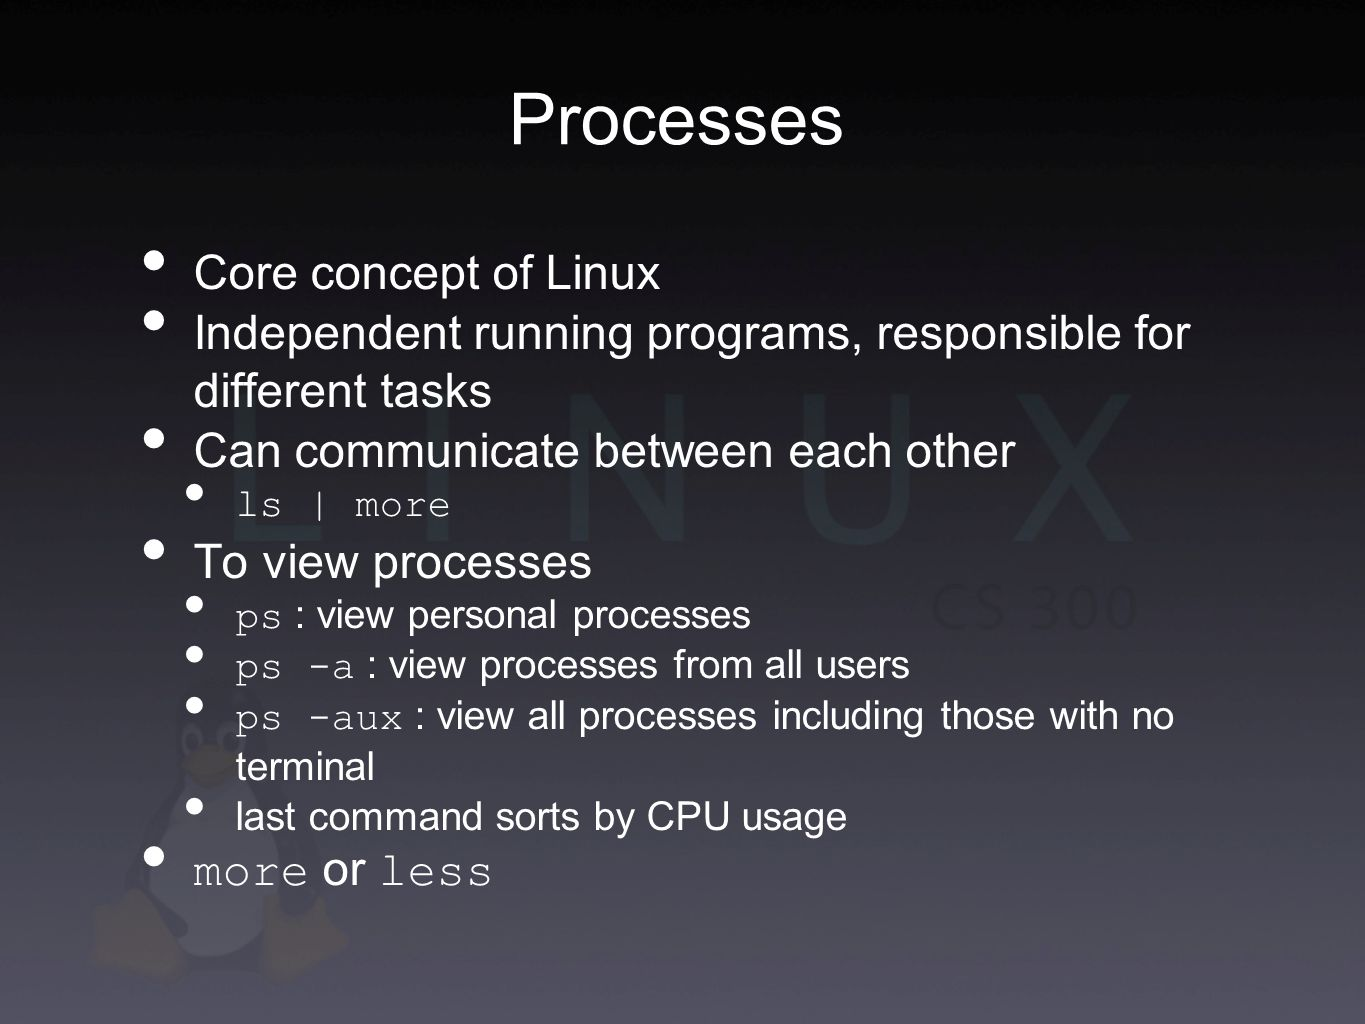 Processes Core concept of Linux Independent running programs, responsible for different tasks Can communicate between each other ls | more To view processes ps : view personal processes ps -a : view processes from all users ps -aux : view all processes including those with no terminal last command sorts by CPU usage more or less